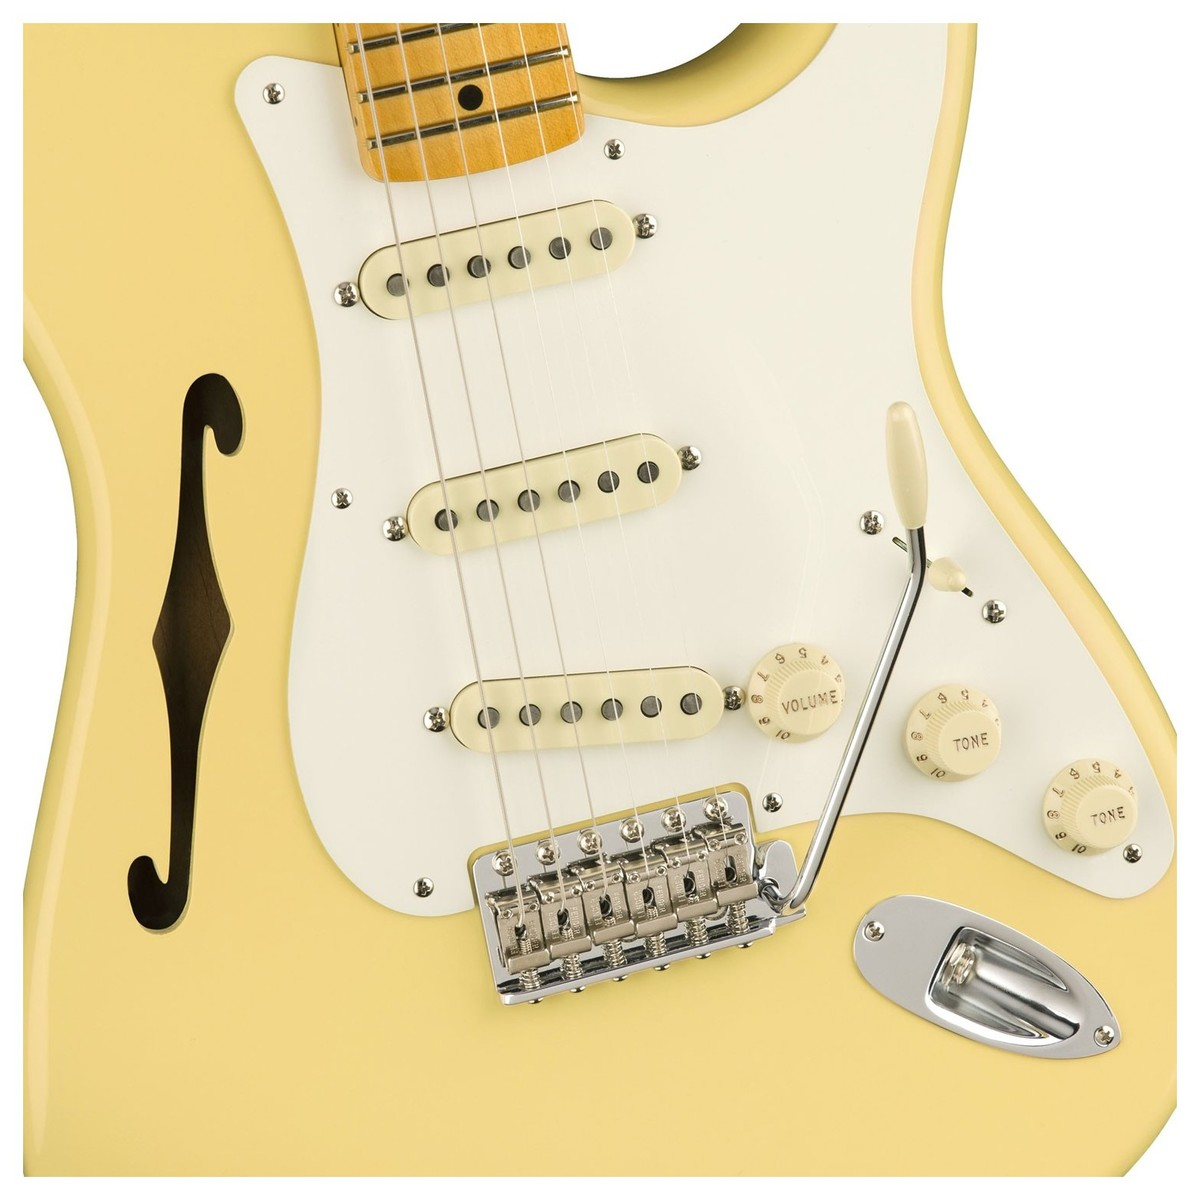 Schema Elettrico Johnson : Fender eric johnson thinline stratocaster mn vintage white a